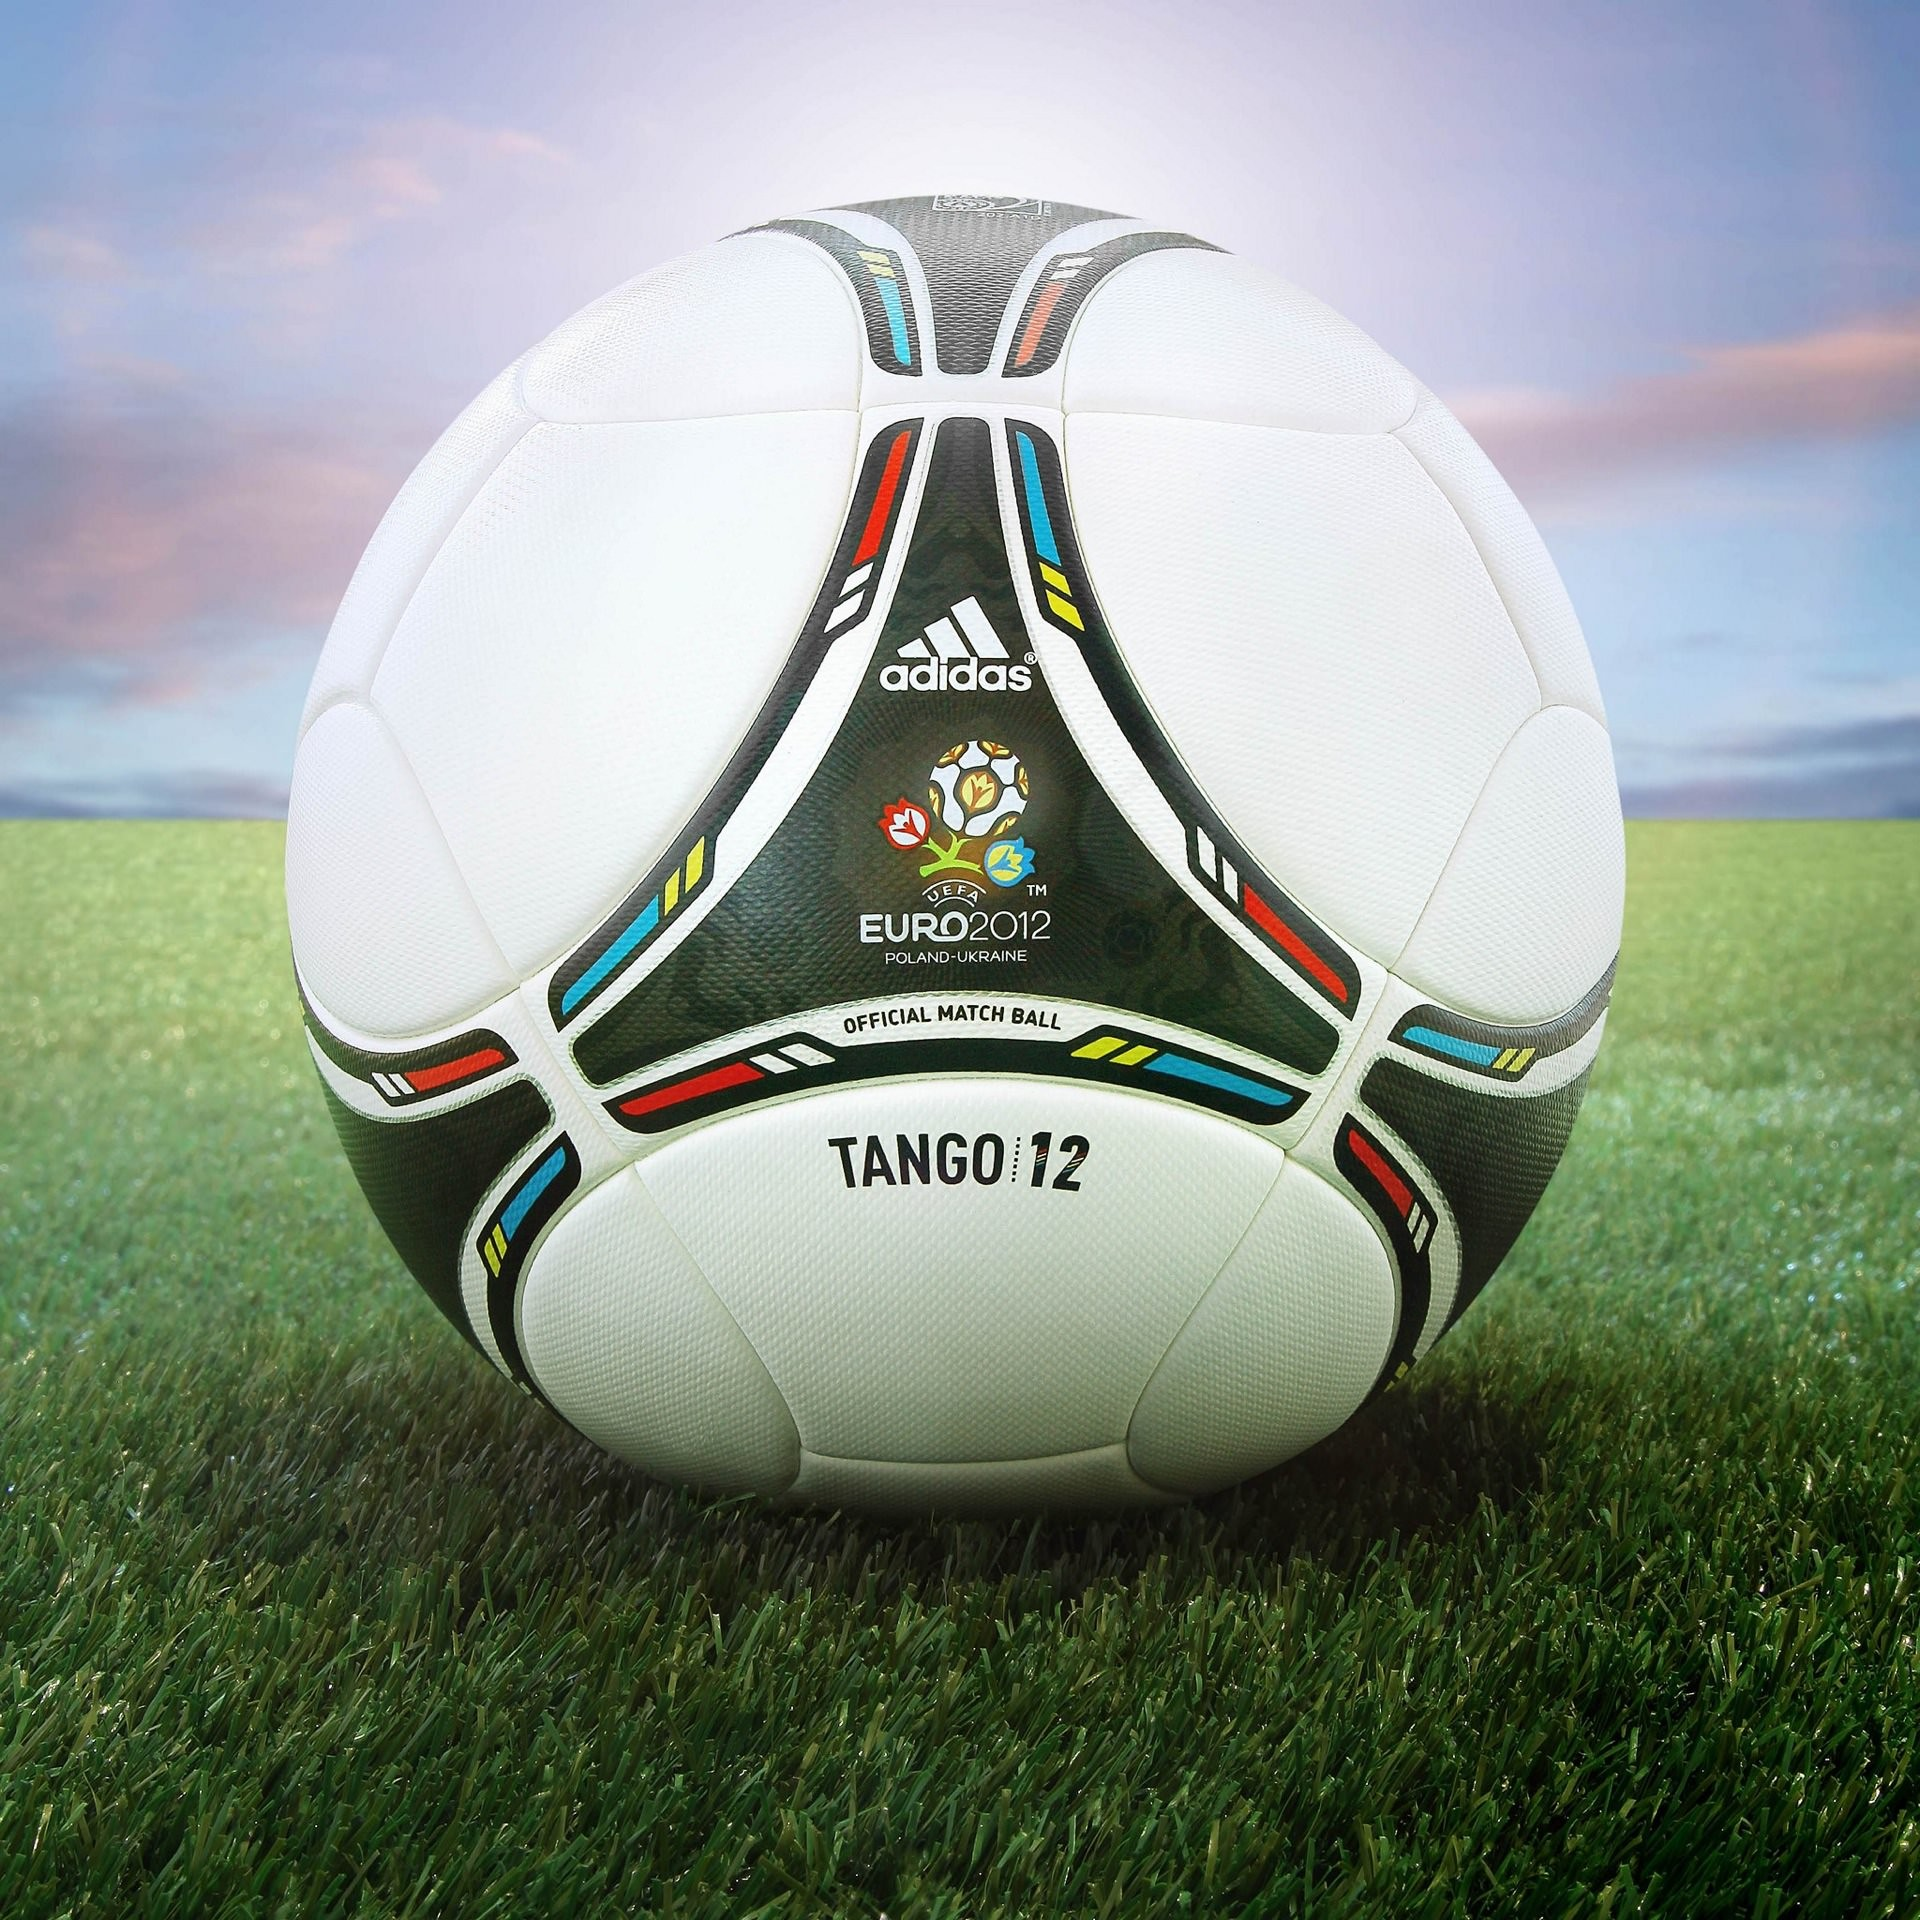 Cool soccer ball Android SmartPhone Wallpaper